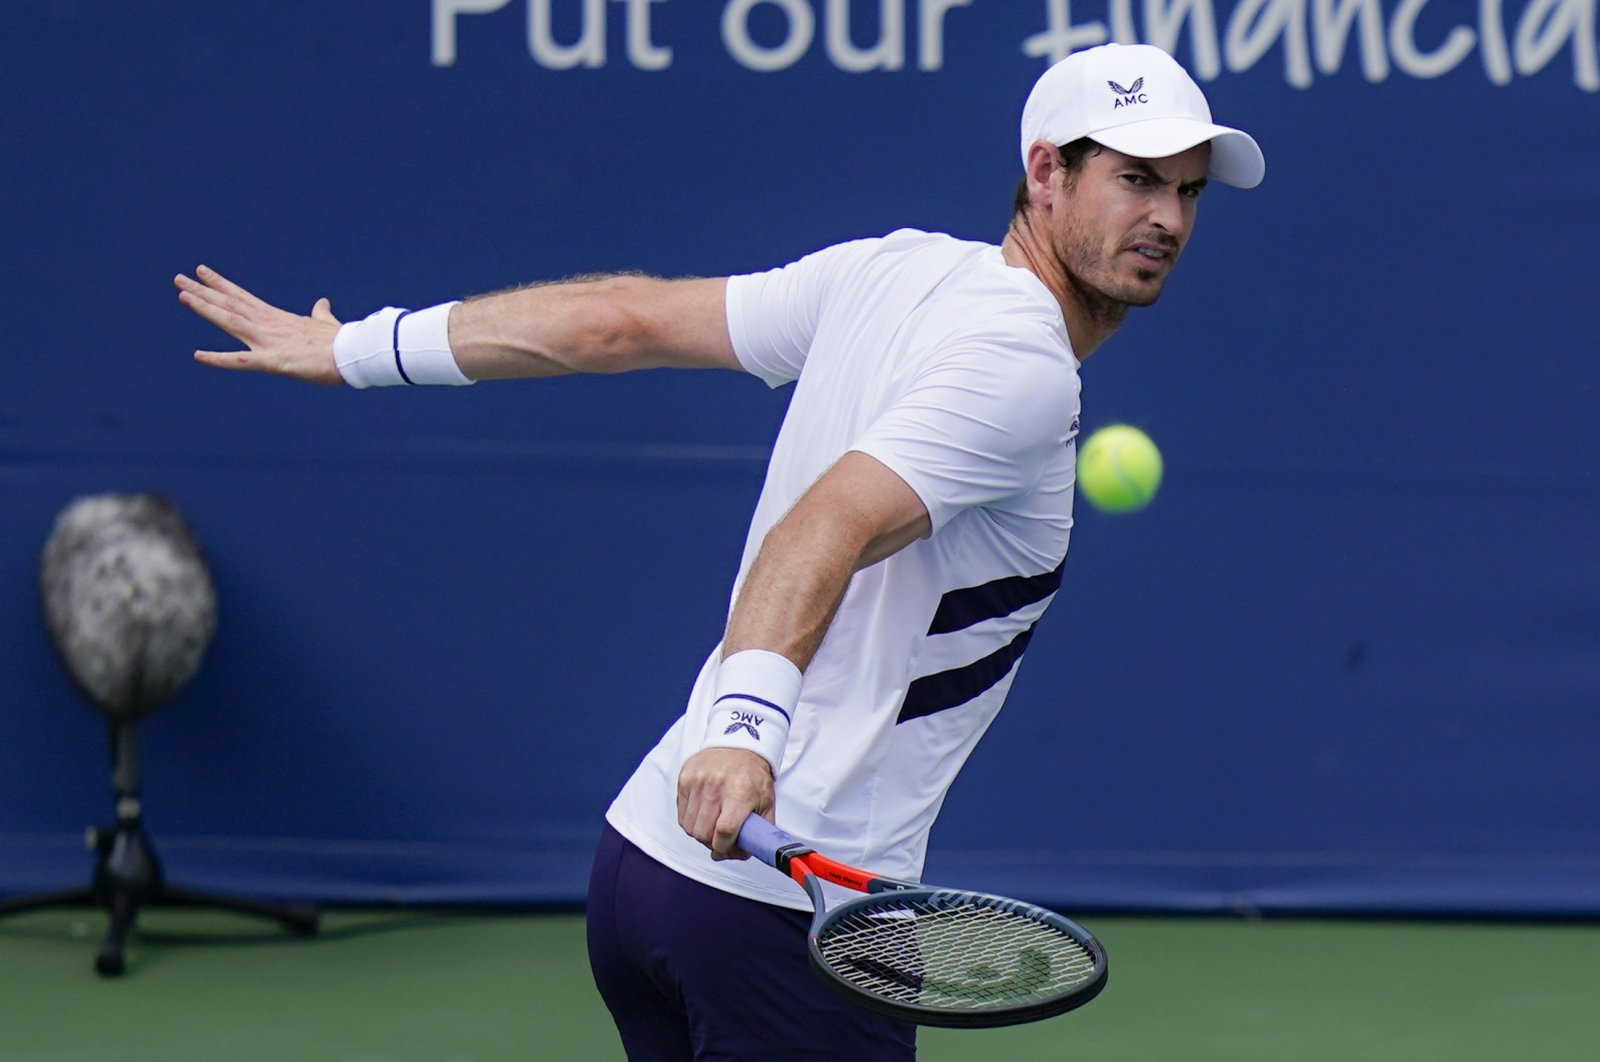 Andy Murray returns to Frances Tiafoe at the Western & Southern Open tennis tournament, in New York, U.S., Aug. 22, 2020. (AP Photo)